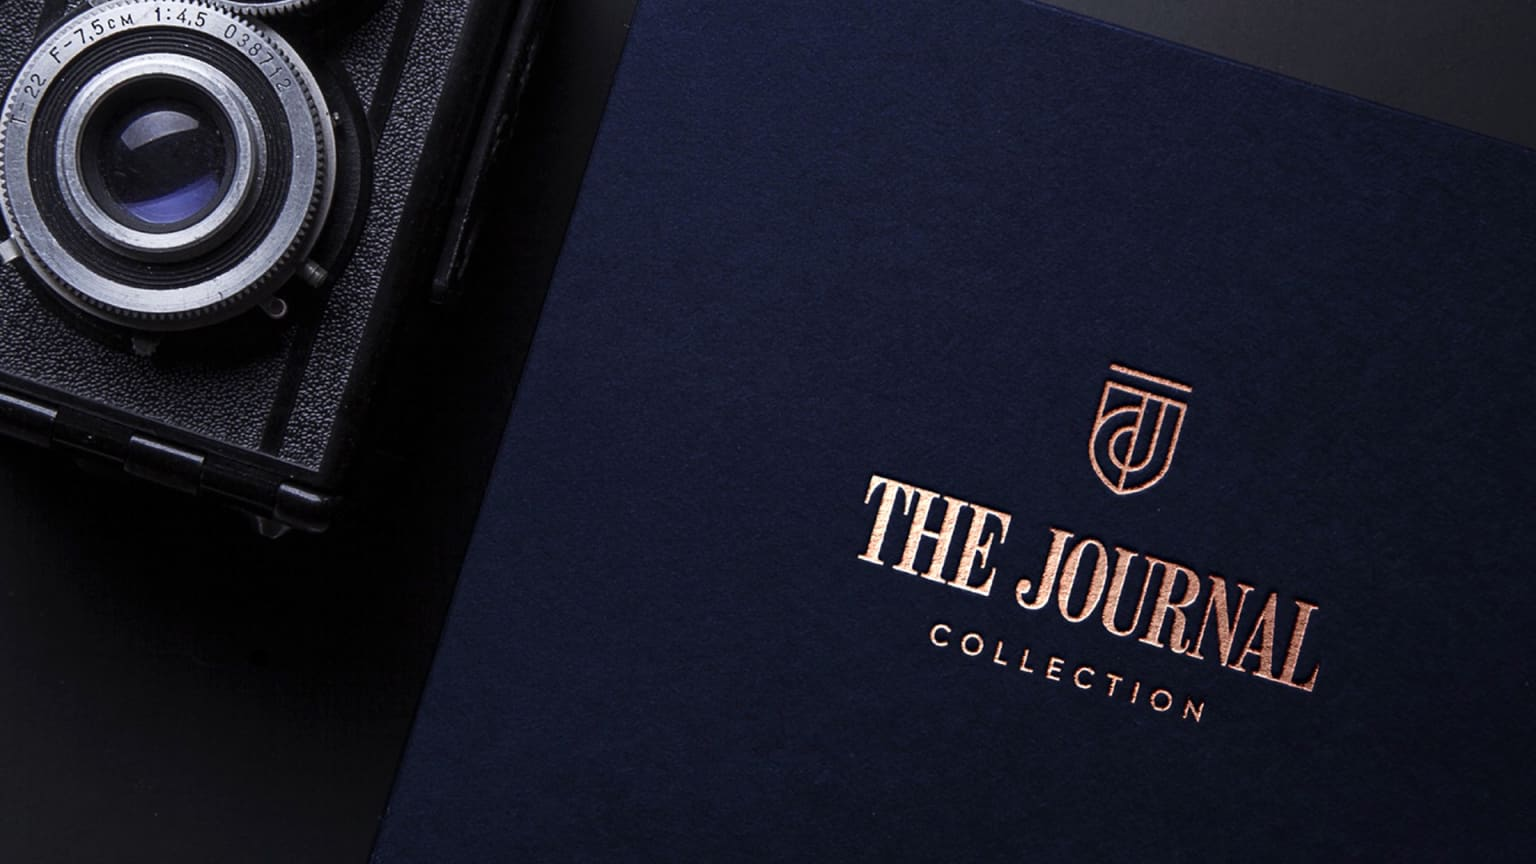 The Journal Collection by WSJ